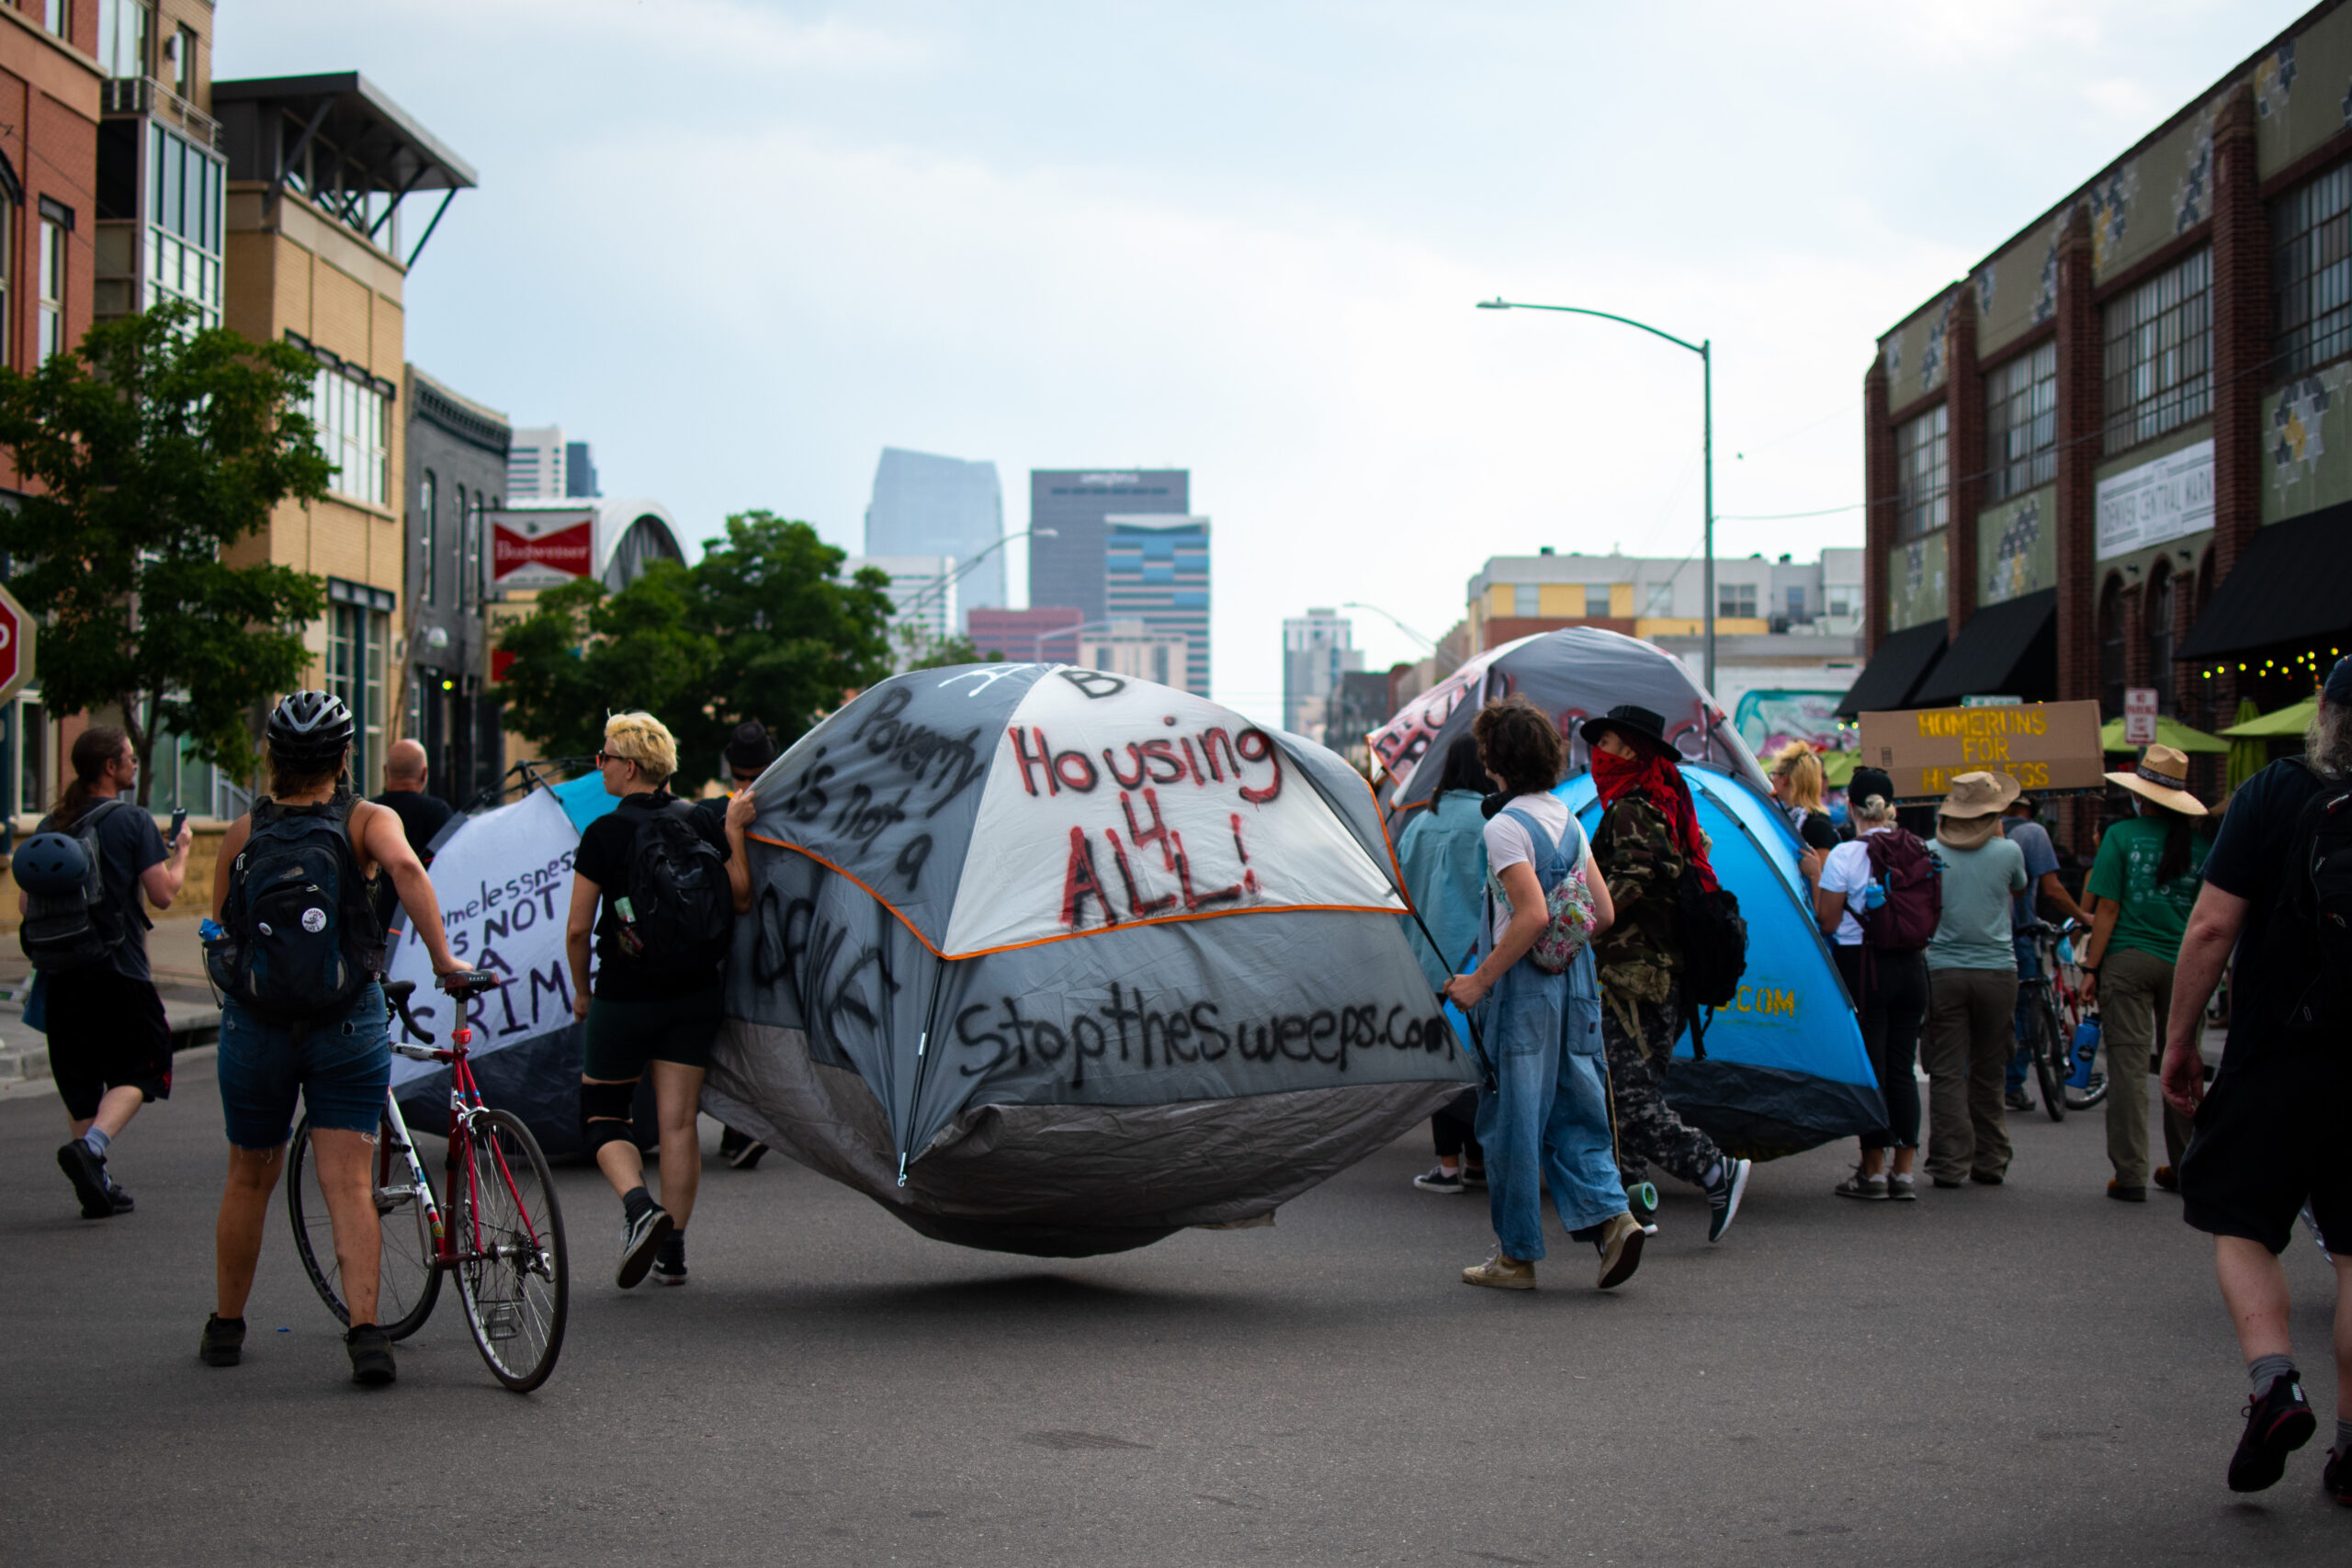 Homeless advocates protest city's camping ban during MLB All-Star Game